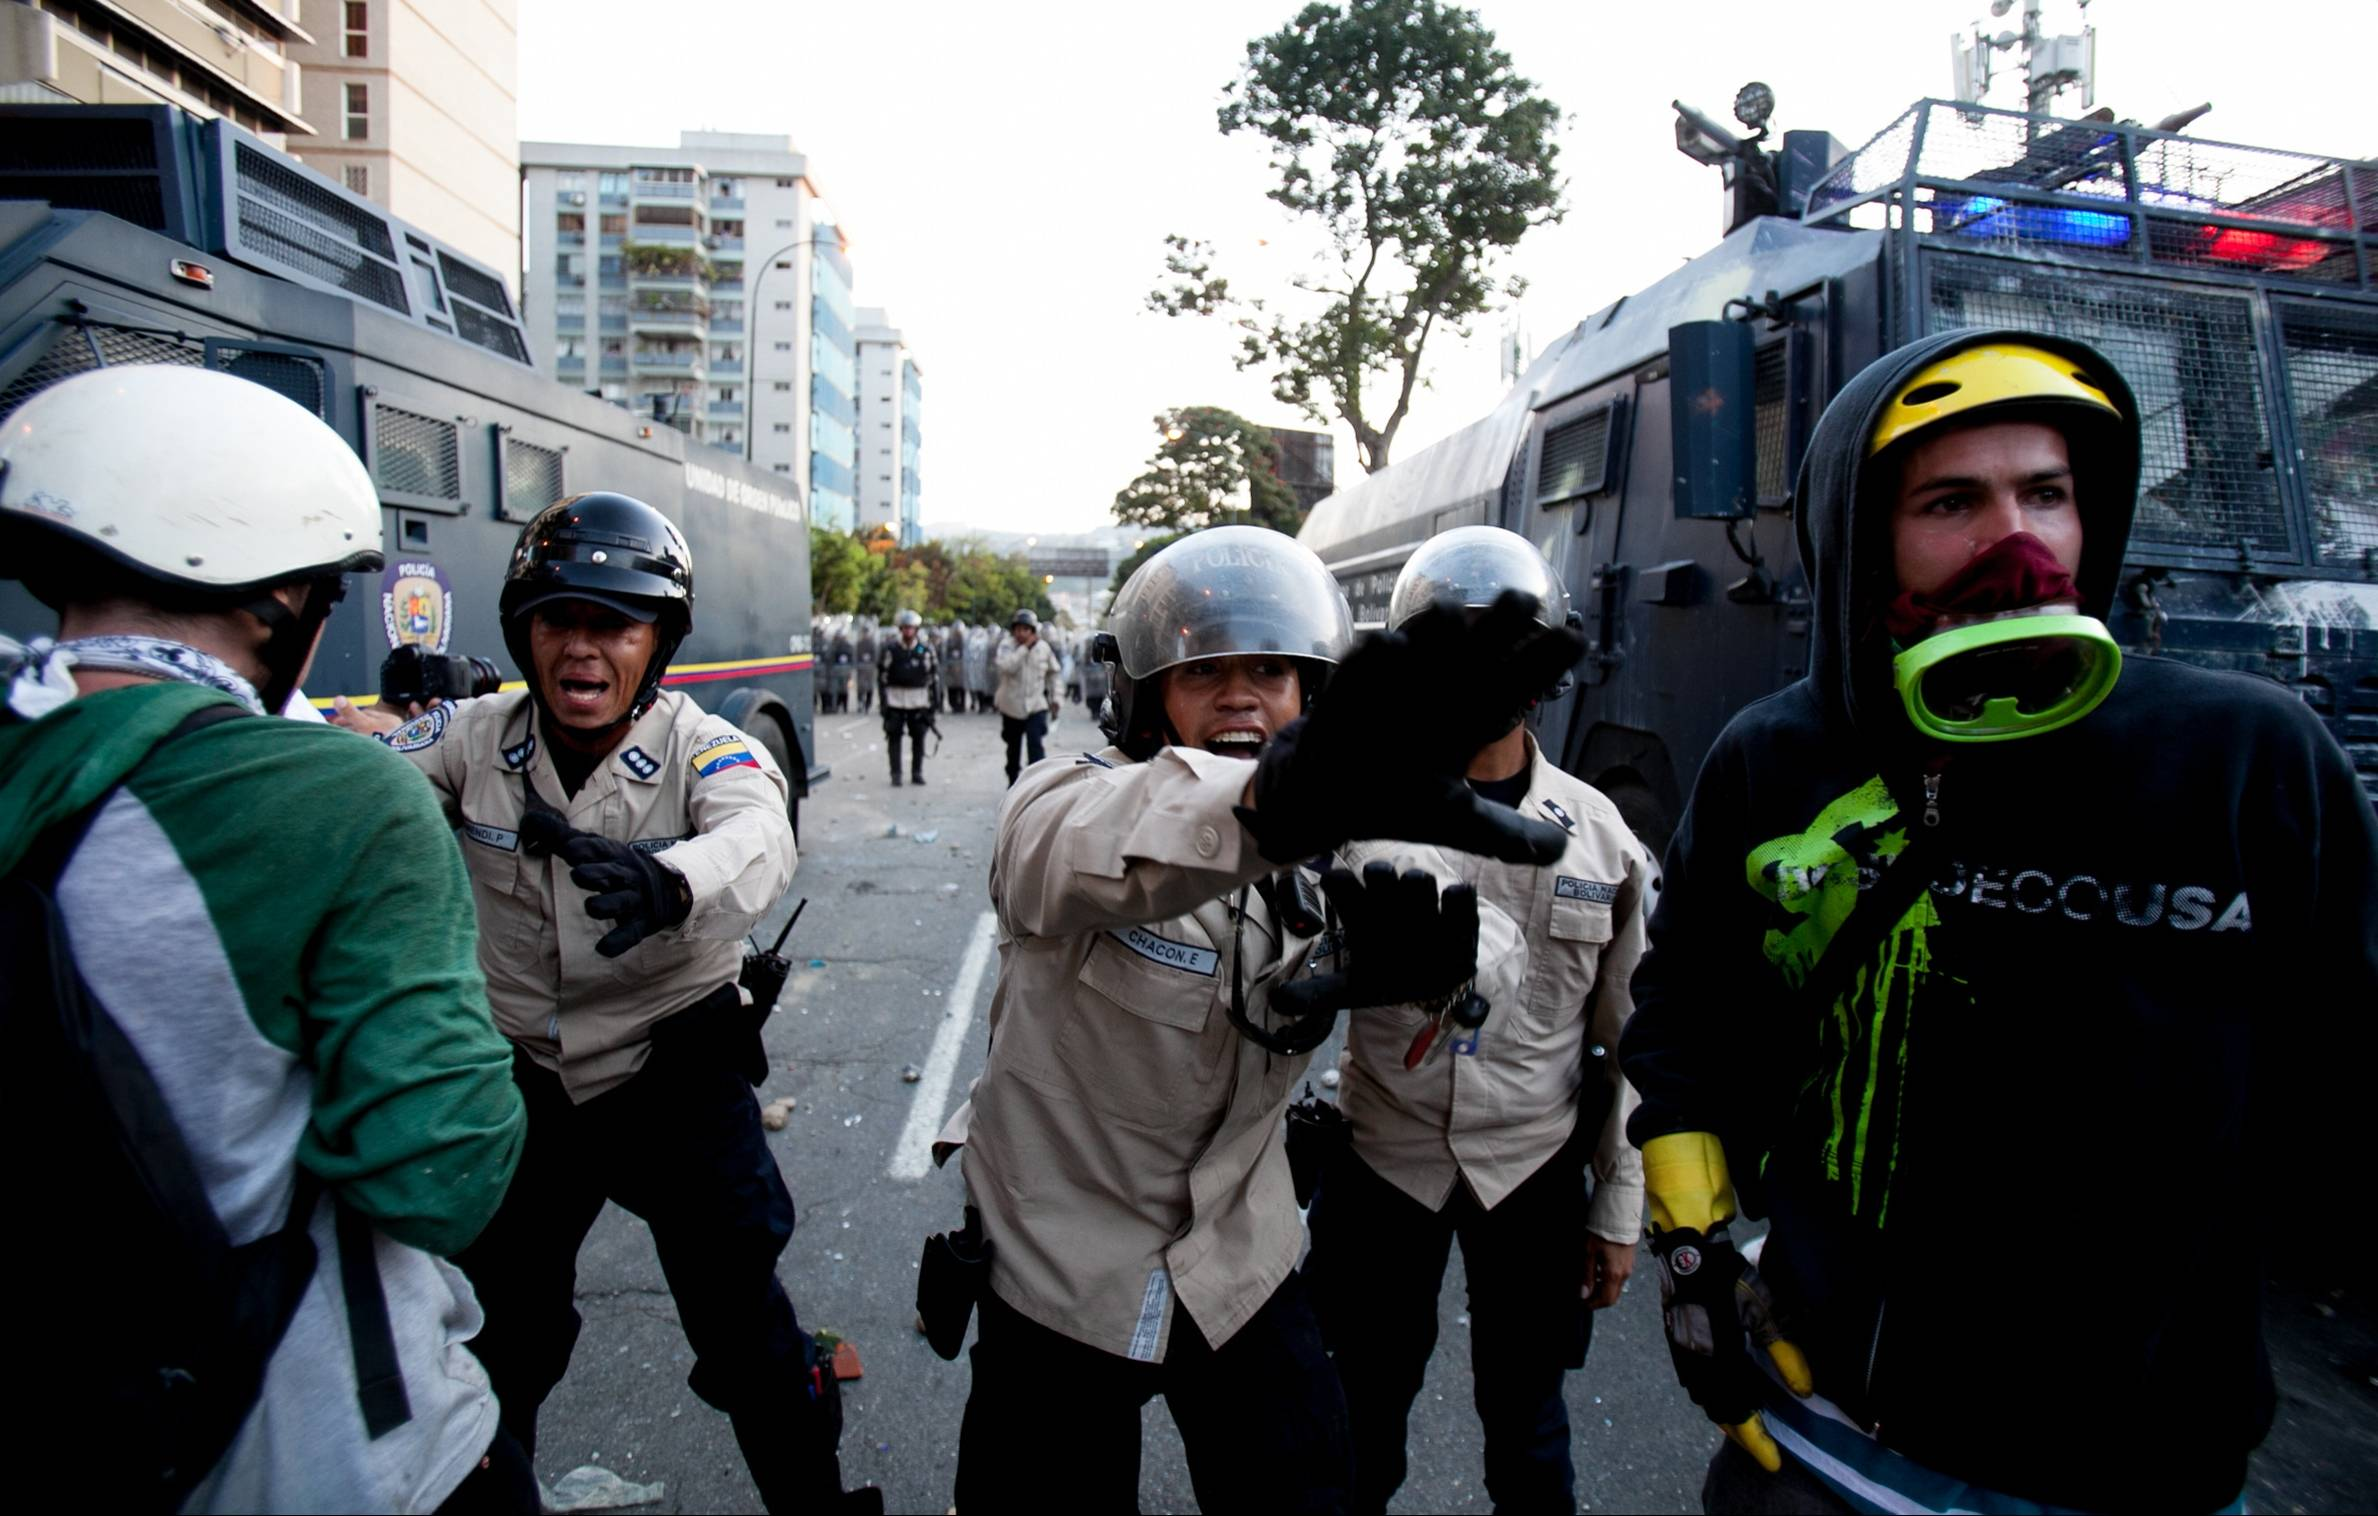 National Bolivarian Police officers yell at demonstrators Saturday to leave the area, in Caracas, Venezuela.